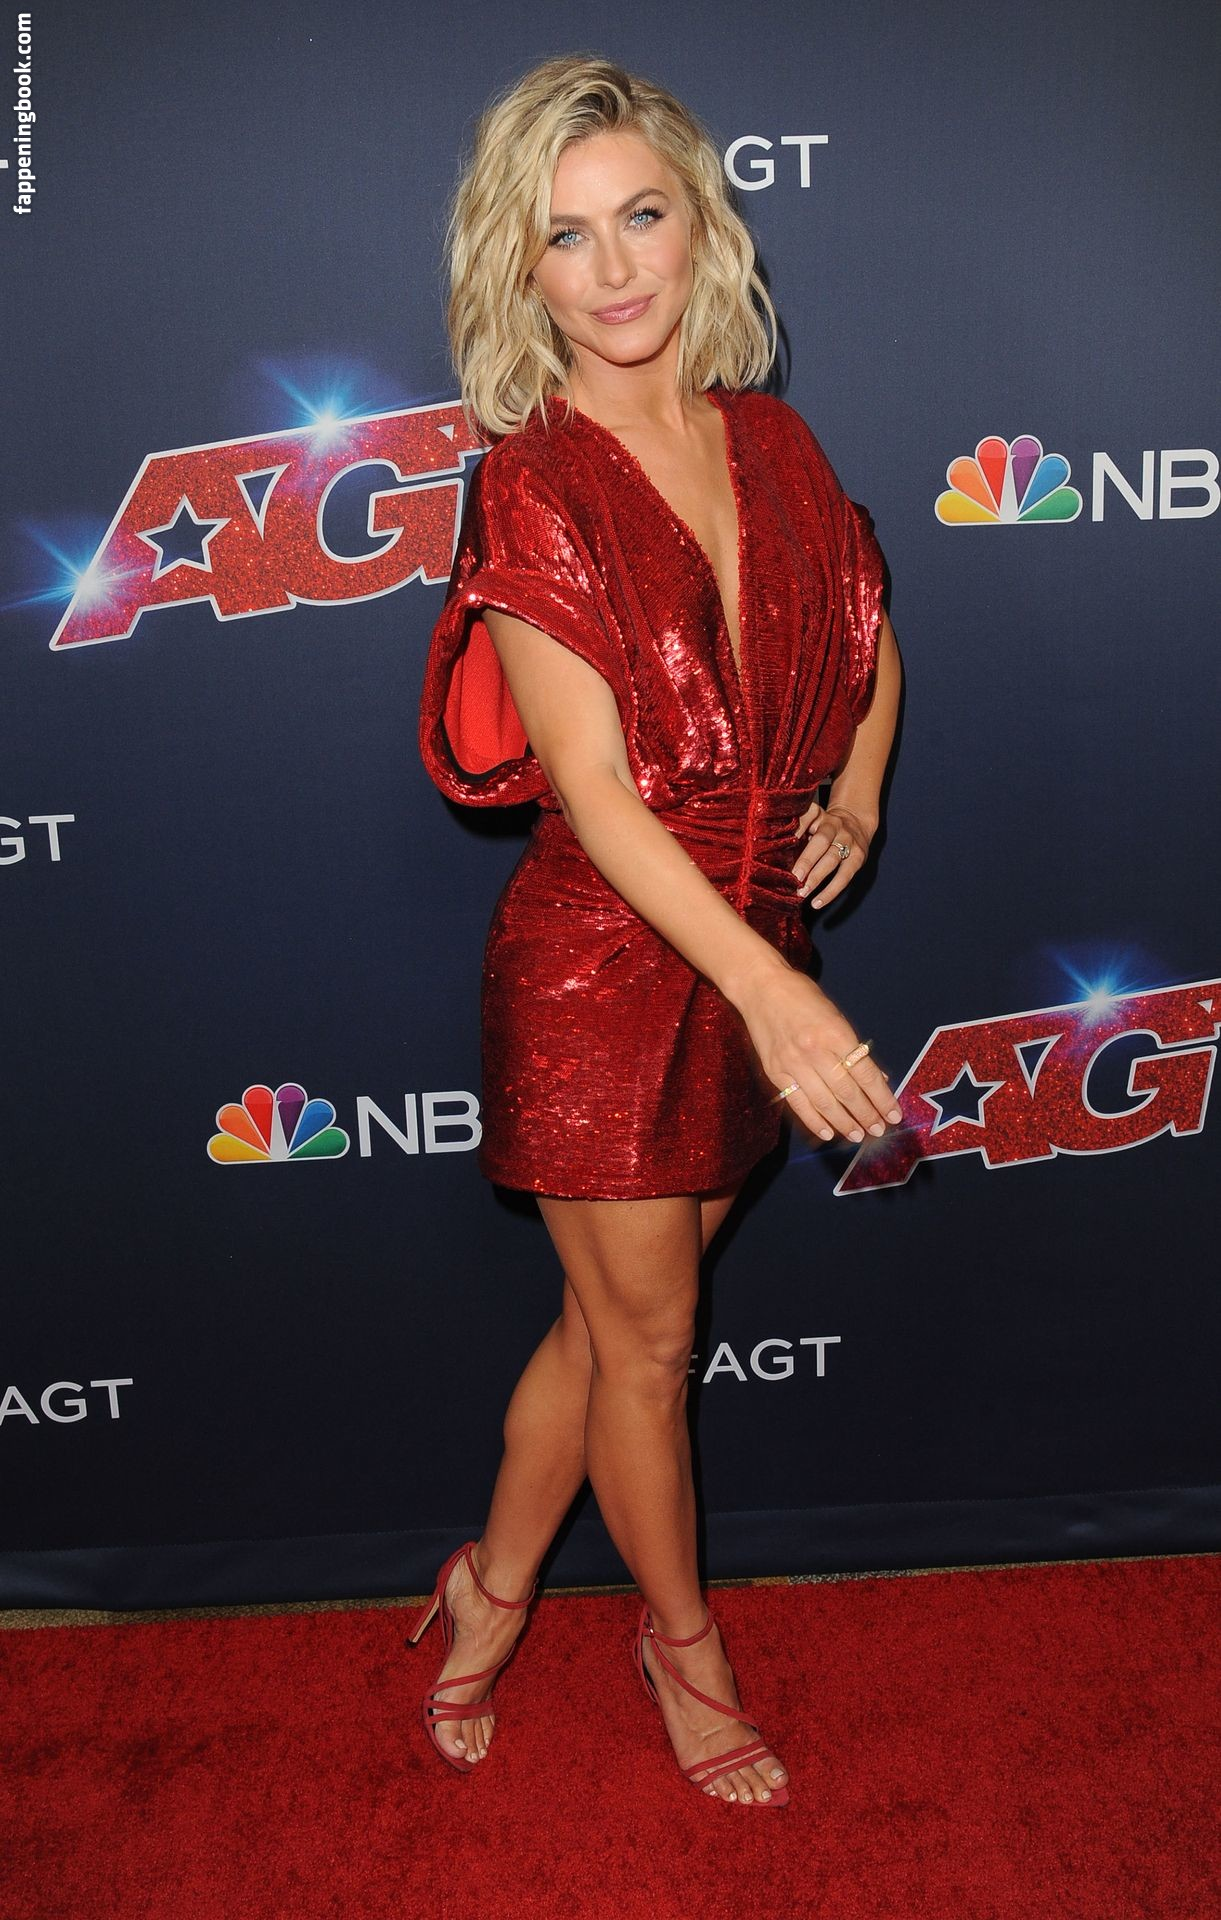 Julianne Hough Nude, Sexy, The Fappening, Uncensored